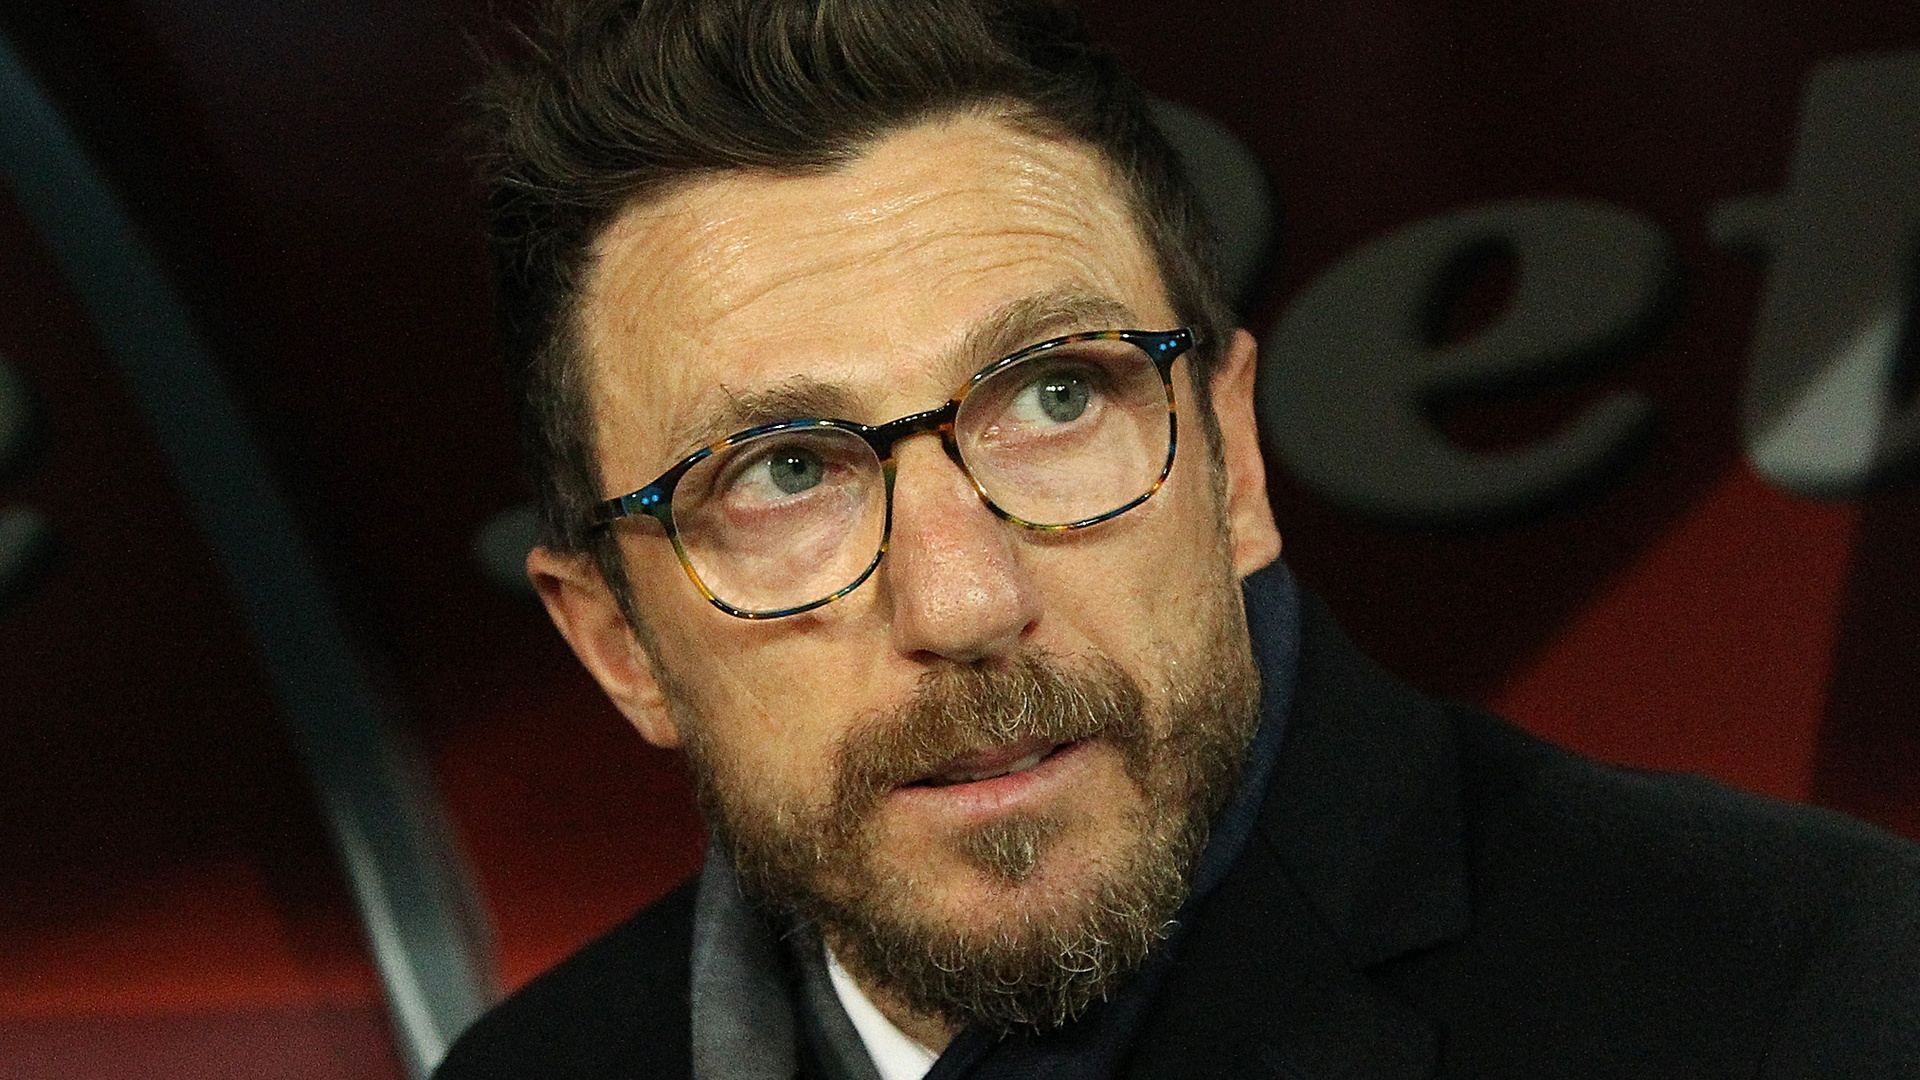 https://images.performgroup.com/di/library/GOAL/fe/d3/eusebio-di-francesco_1f6k6s5g317ml1ho52rlpq6dr1.jpg